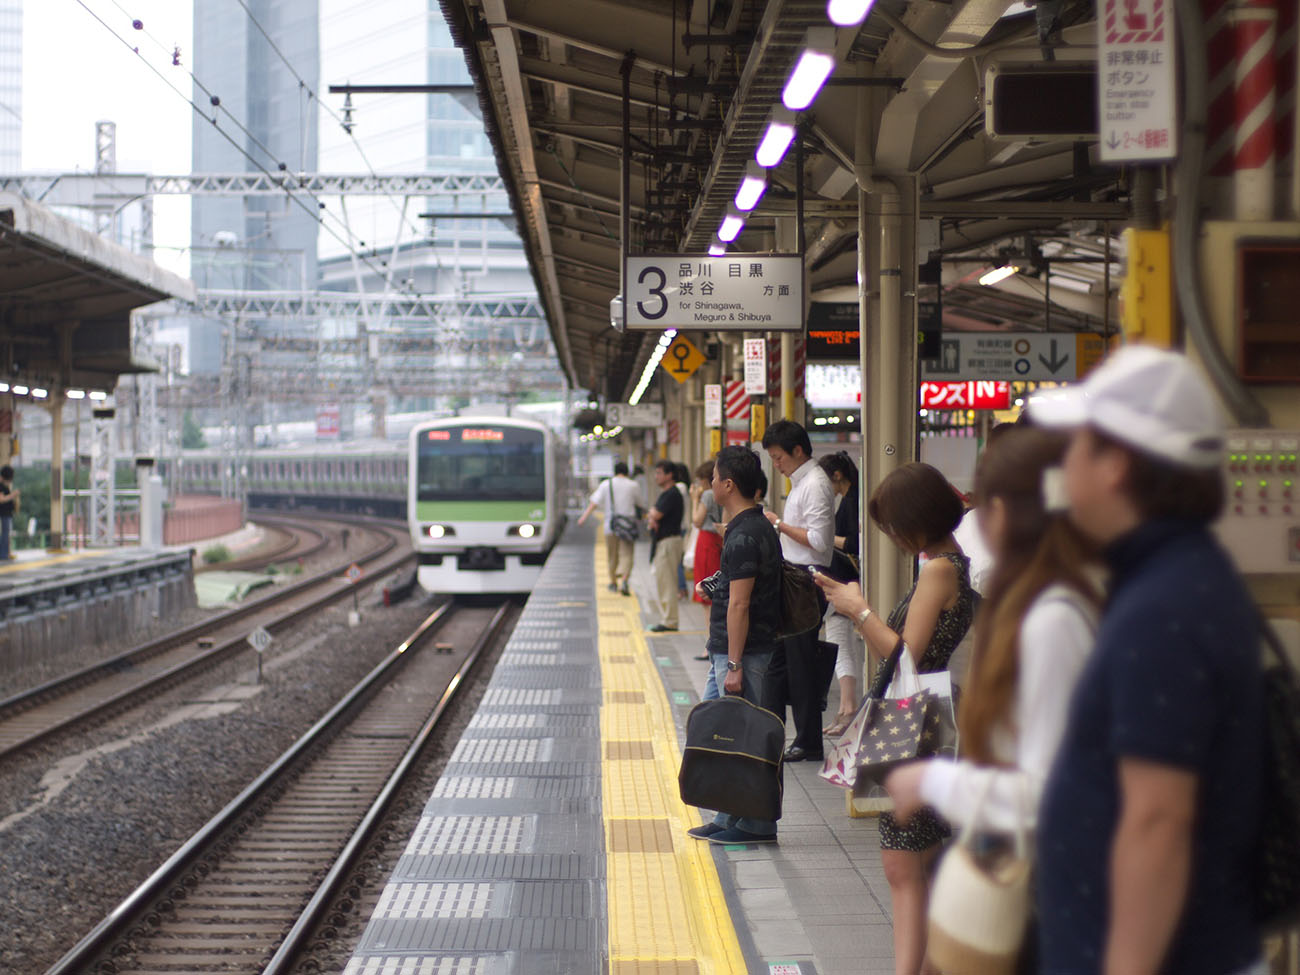 A photo shows passengers waiting while a train enters the platform at a railway station in Japan.